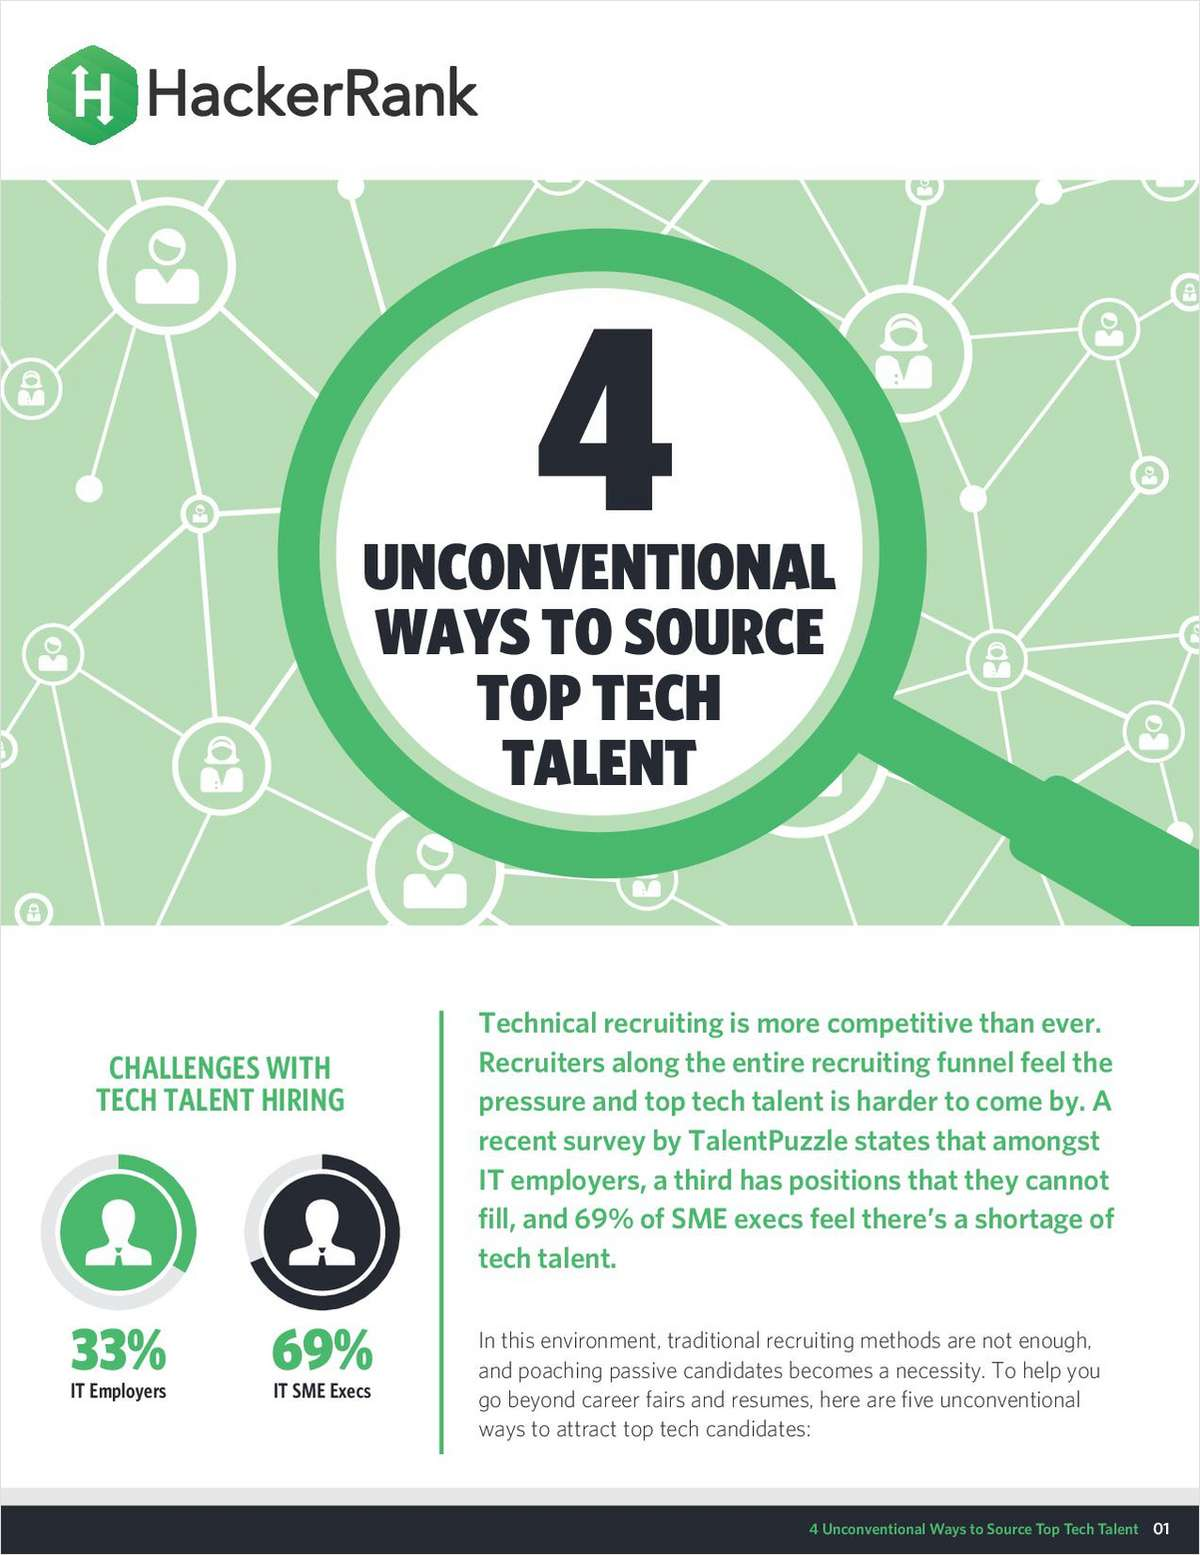 4 Unconventional Ways to Source Top Tech Talent